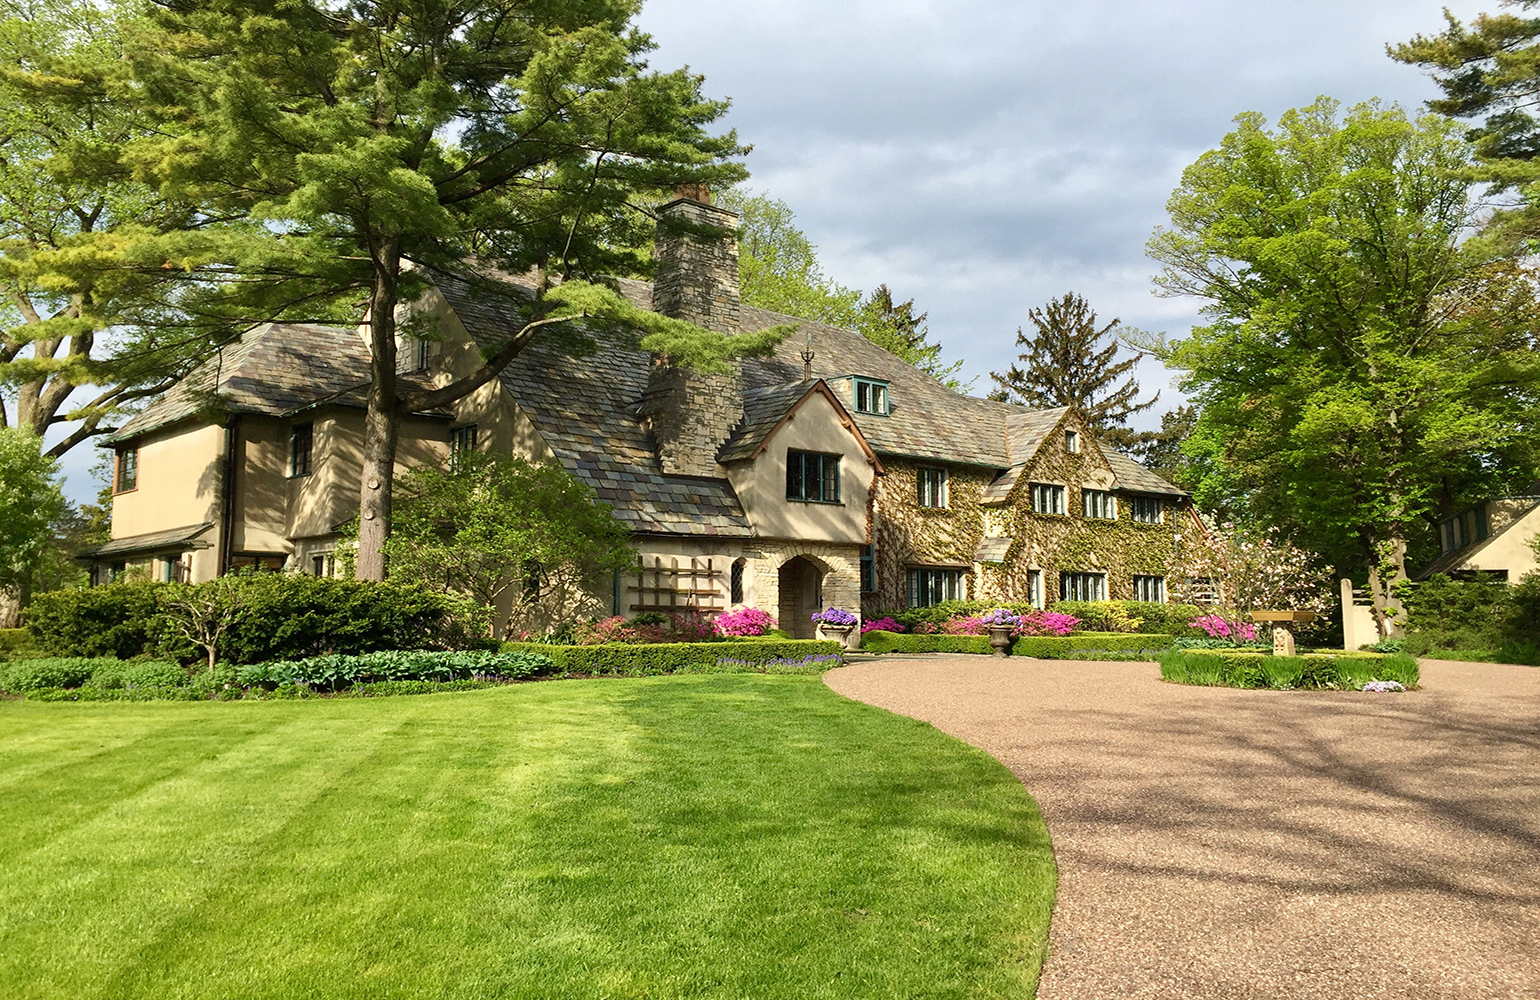 The Lake Forest Showhouse & Gardens, tours availablethrough May 21, 2017, Monday - Friday:9:00 a.m. - 2:00 p.m.; Saturday and Sunday:10:00 a.m. - 4:00 p.m.Tickets: $37per person online; $40 per person at the door